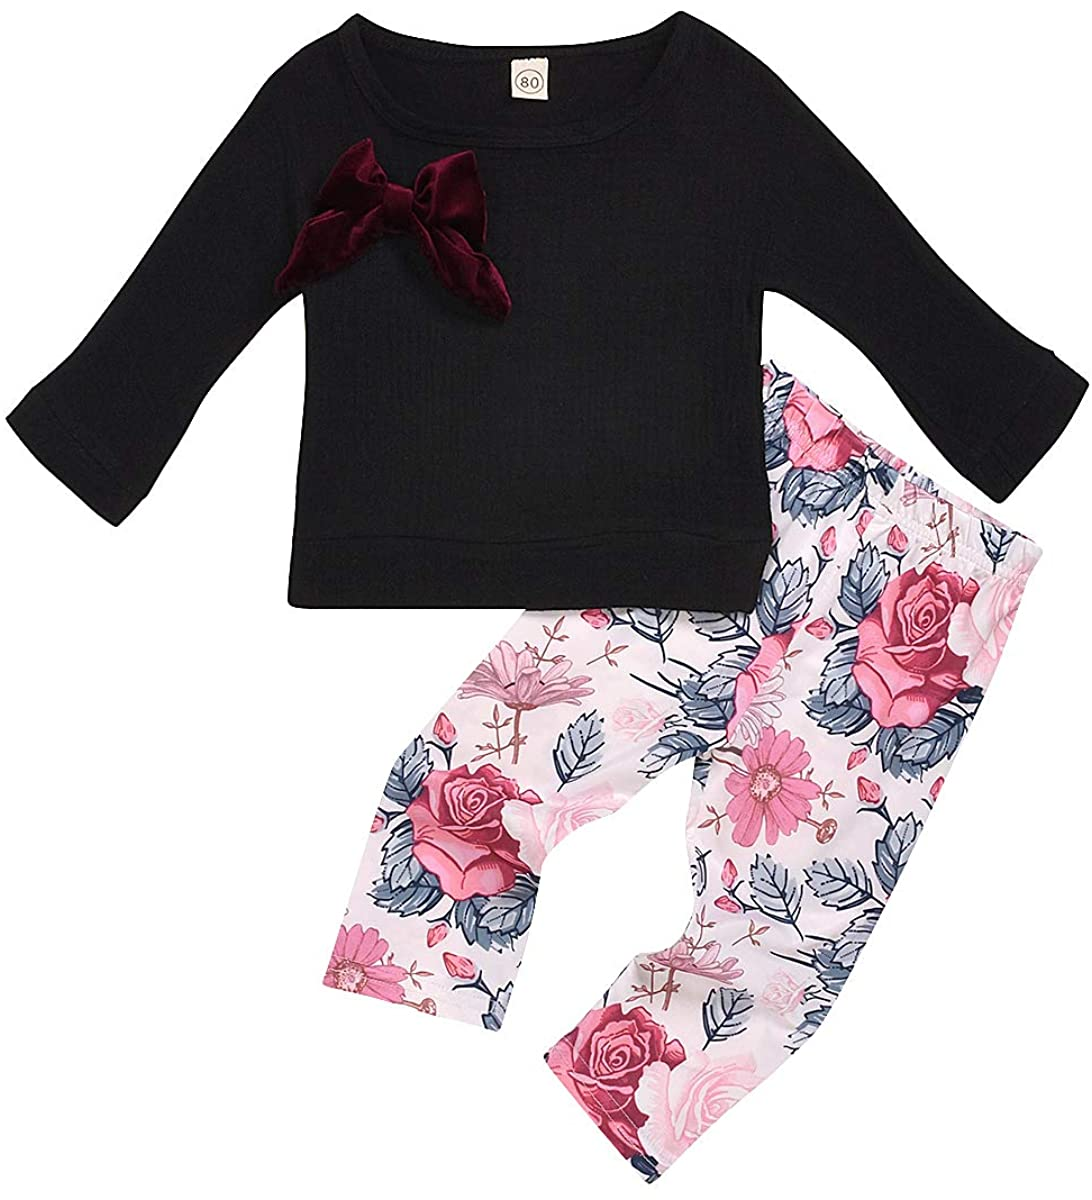 Toddler Baby Girls Outfits Set Cotton Linen Bow T-Shirt Tops + Flowers Pants 2pc Clothes Set